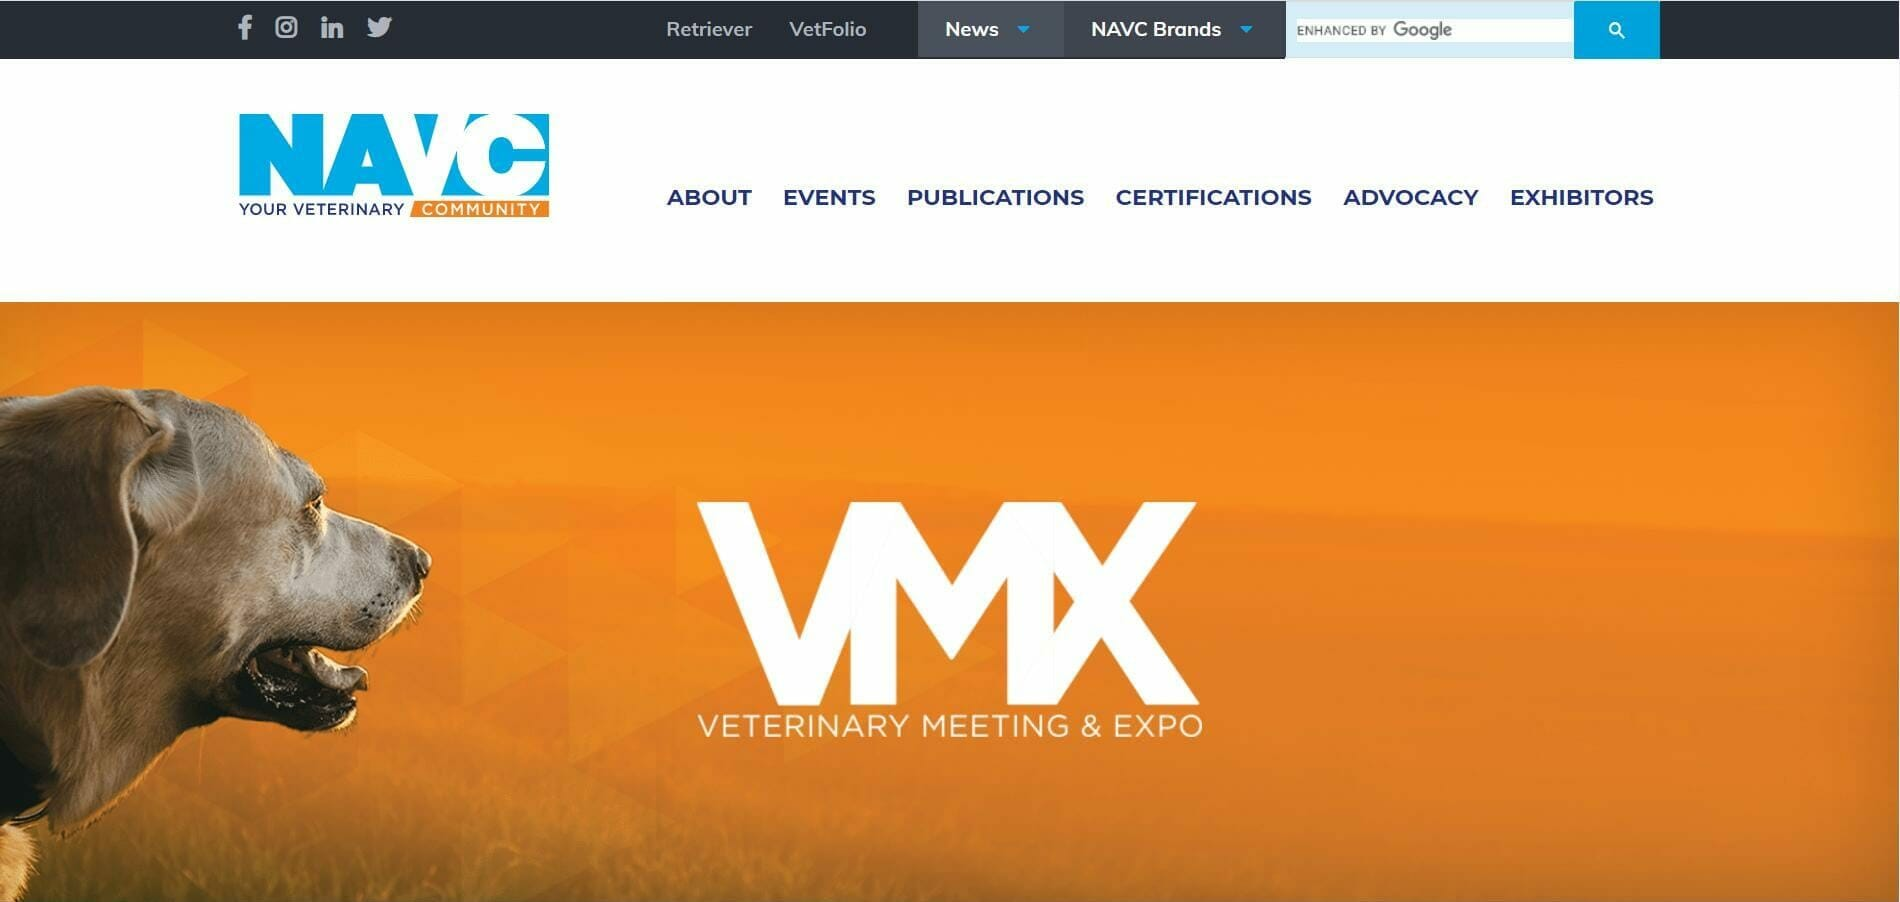 VMX – Veterinary Meeting and Expo